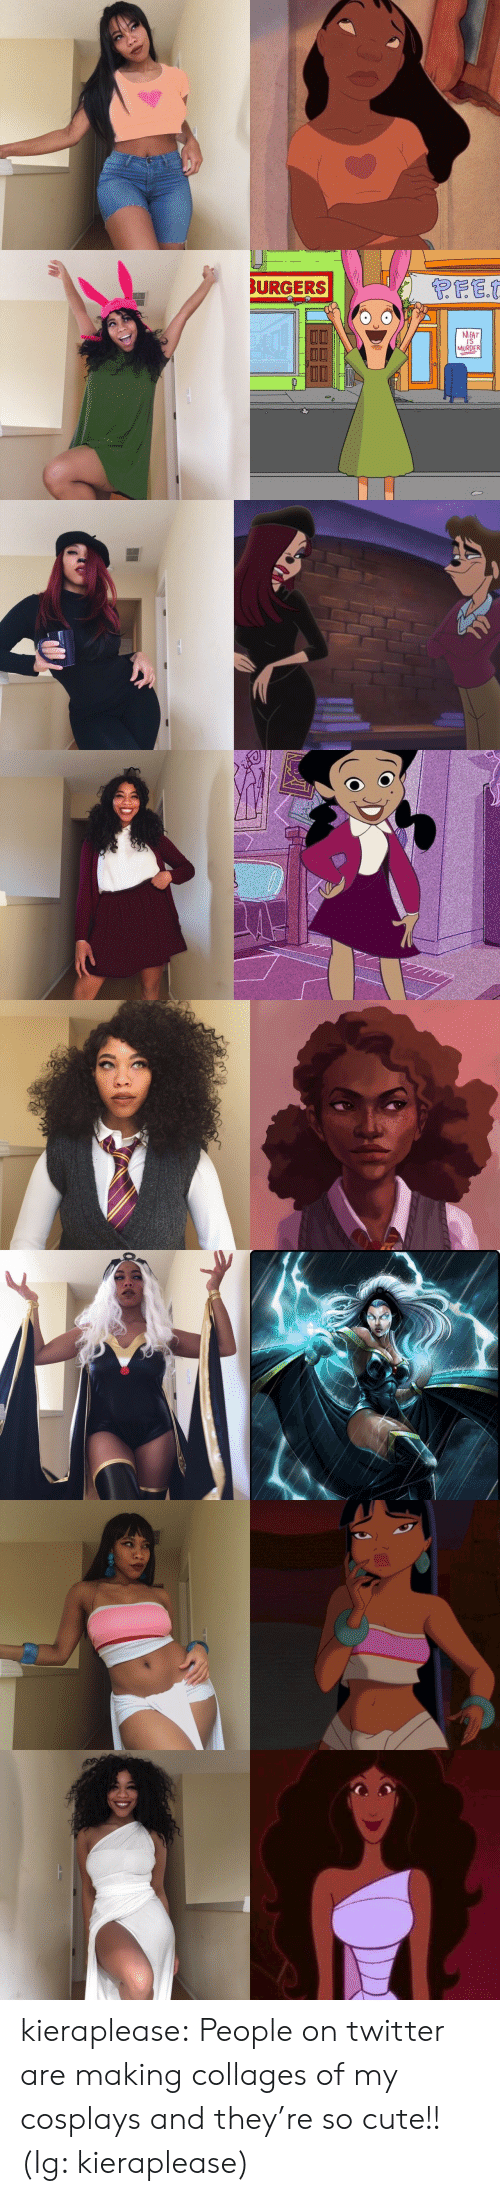 Cute, Instagram, and Tumblr: BURGERS  MEAT  IS  MURDER kieraplease: People on twitter are making collages of my cosplays and they're so cute!! (Ig: kieraplease)